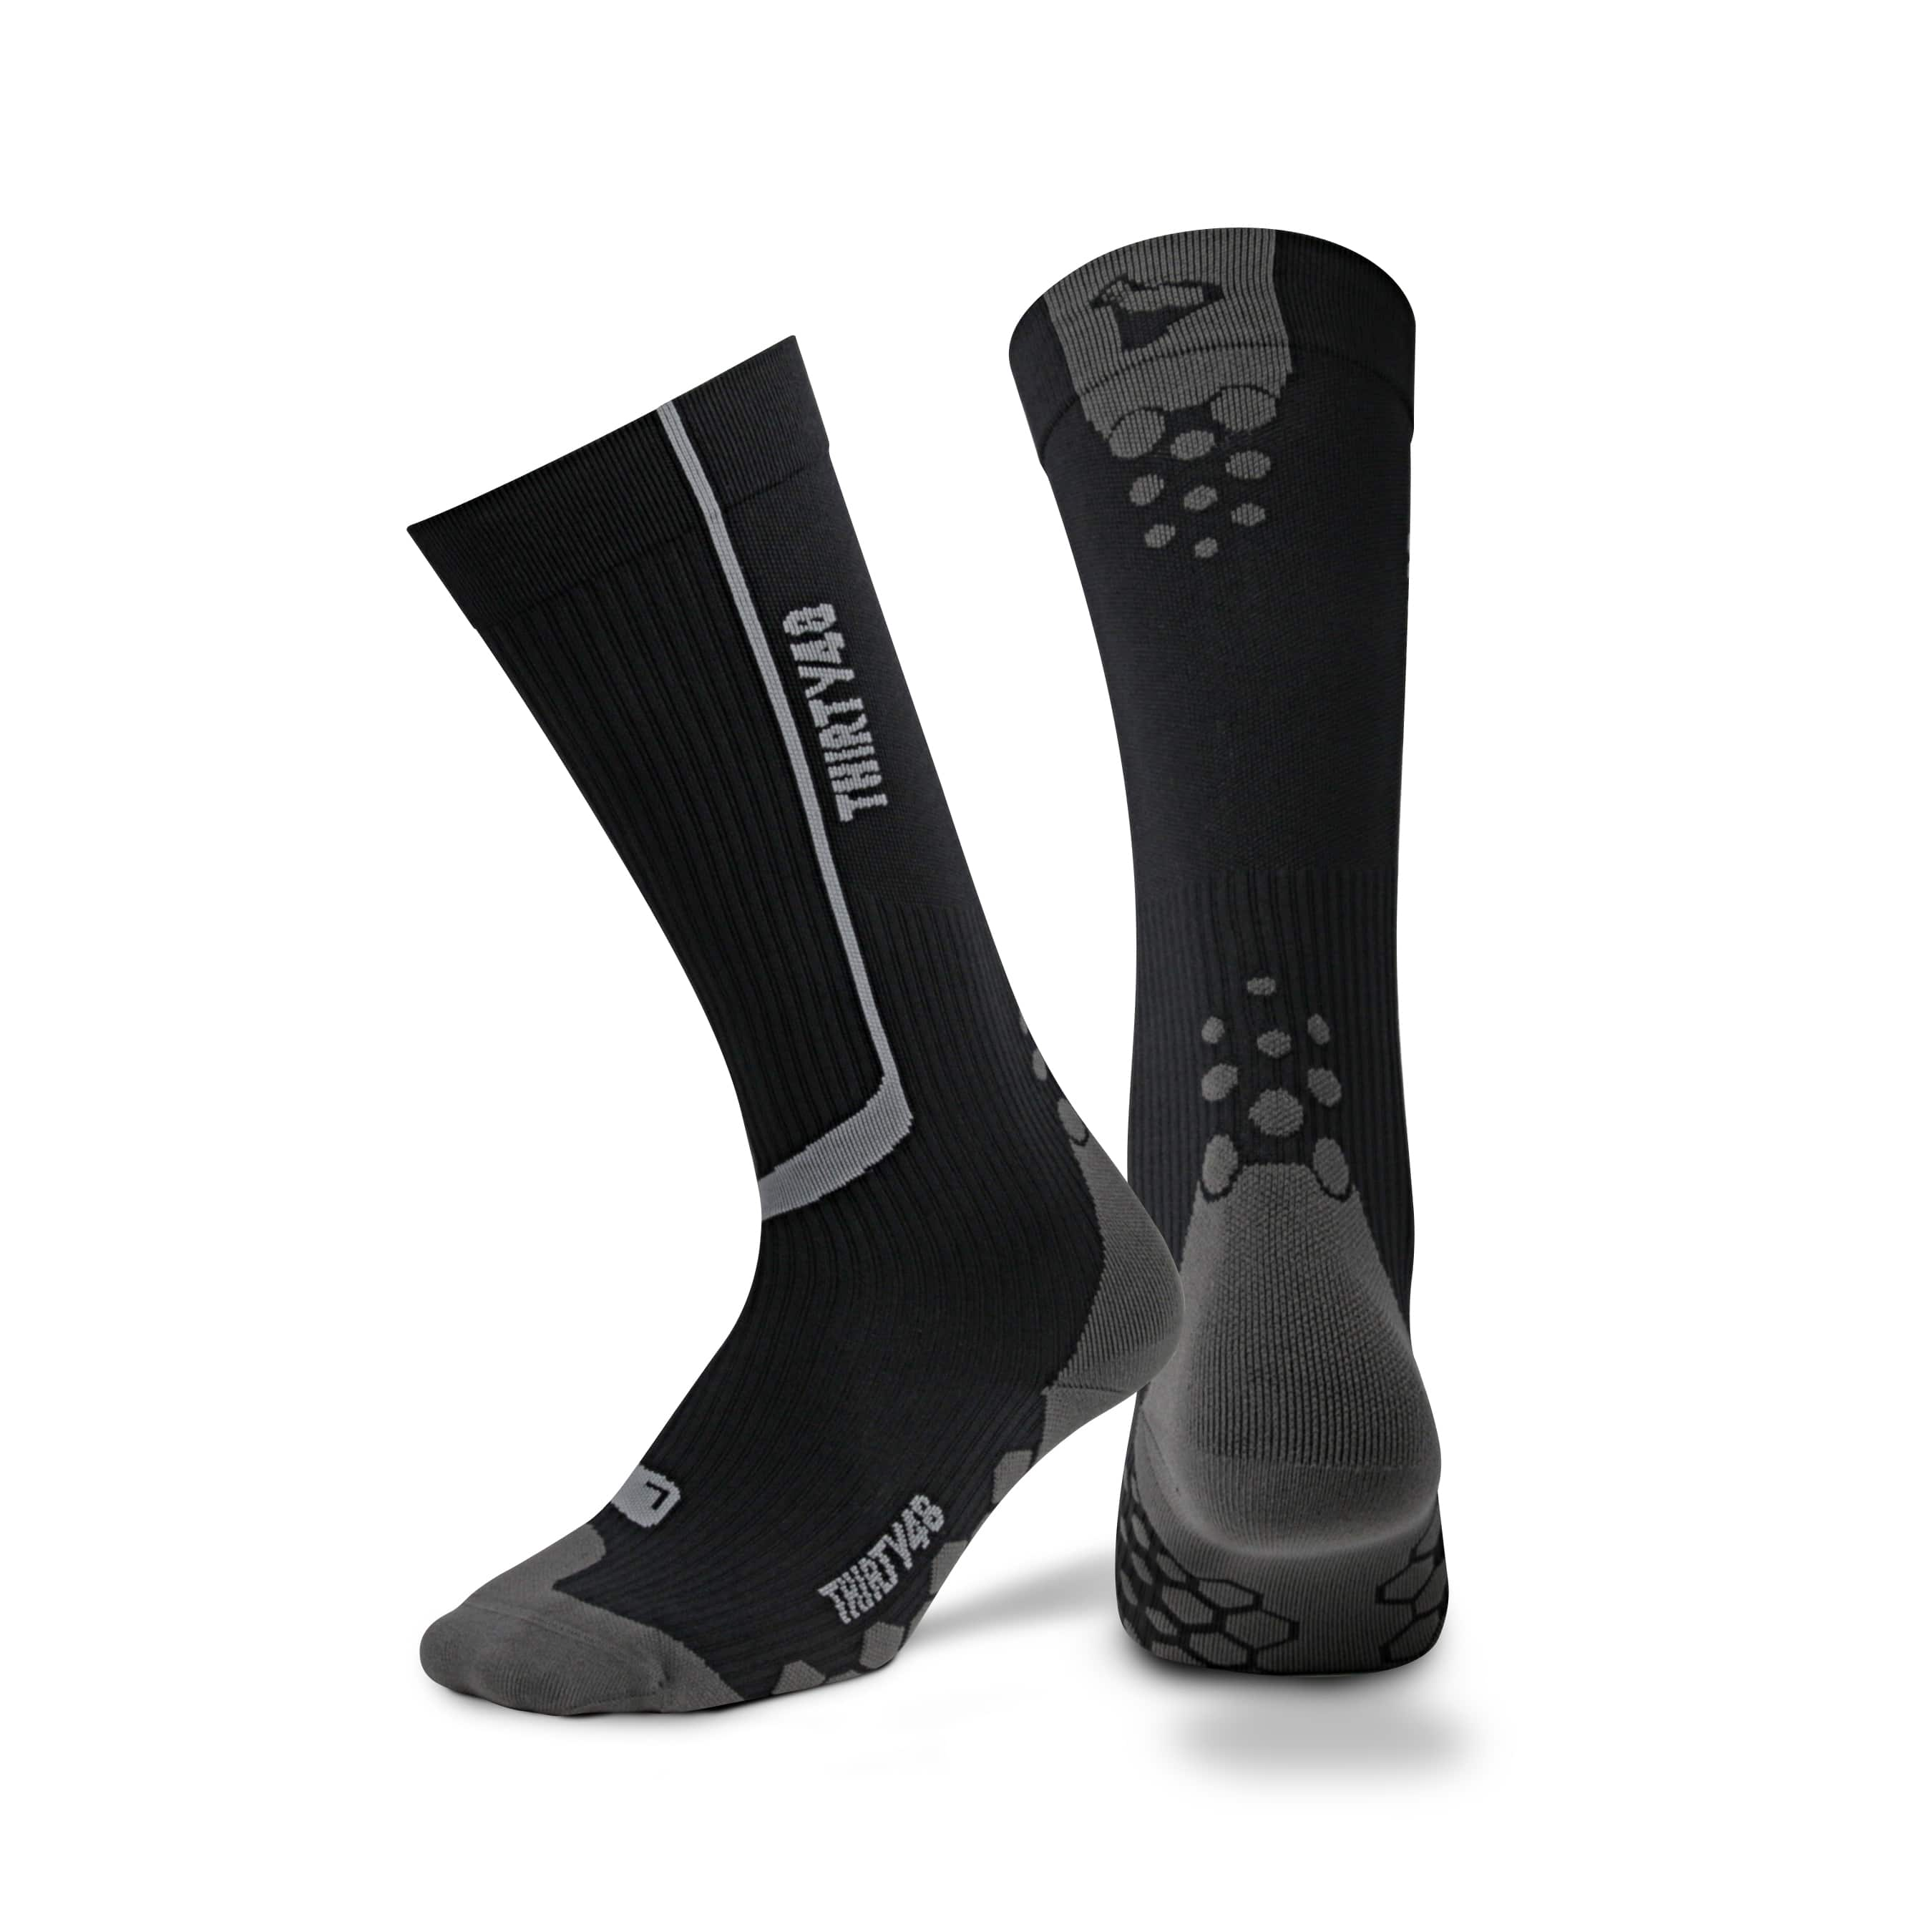 2-Pack Thirty48 Compression Full Socks Plus $13 AC + Free Shipping